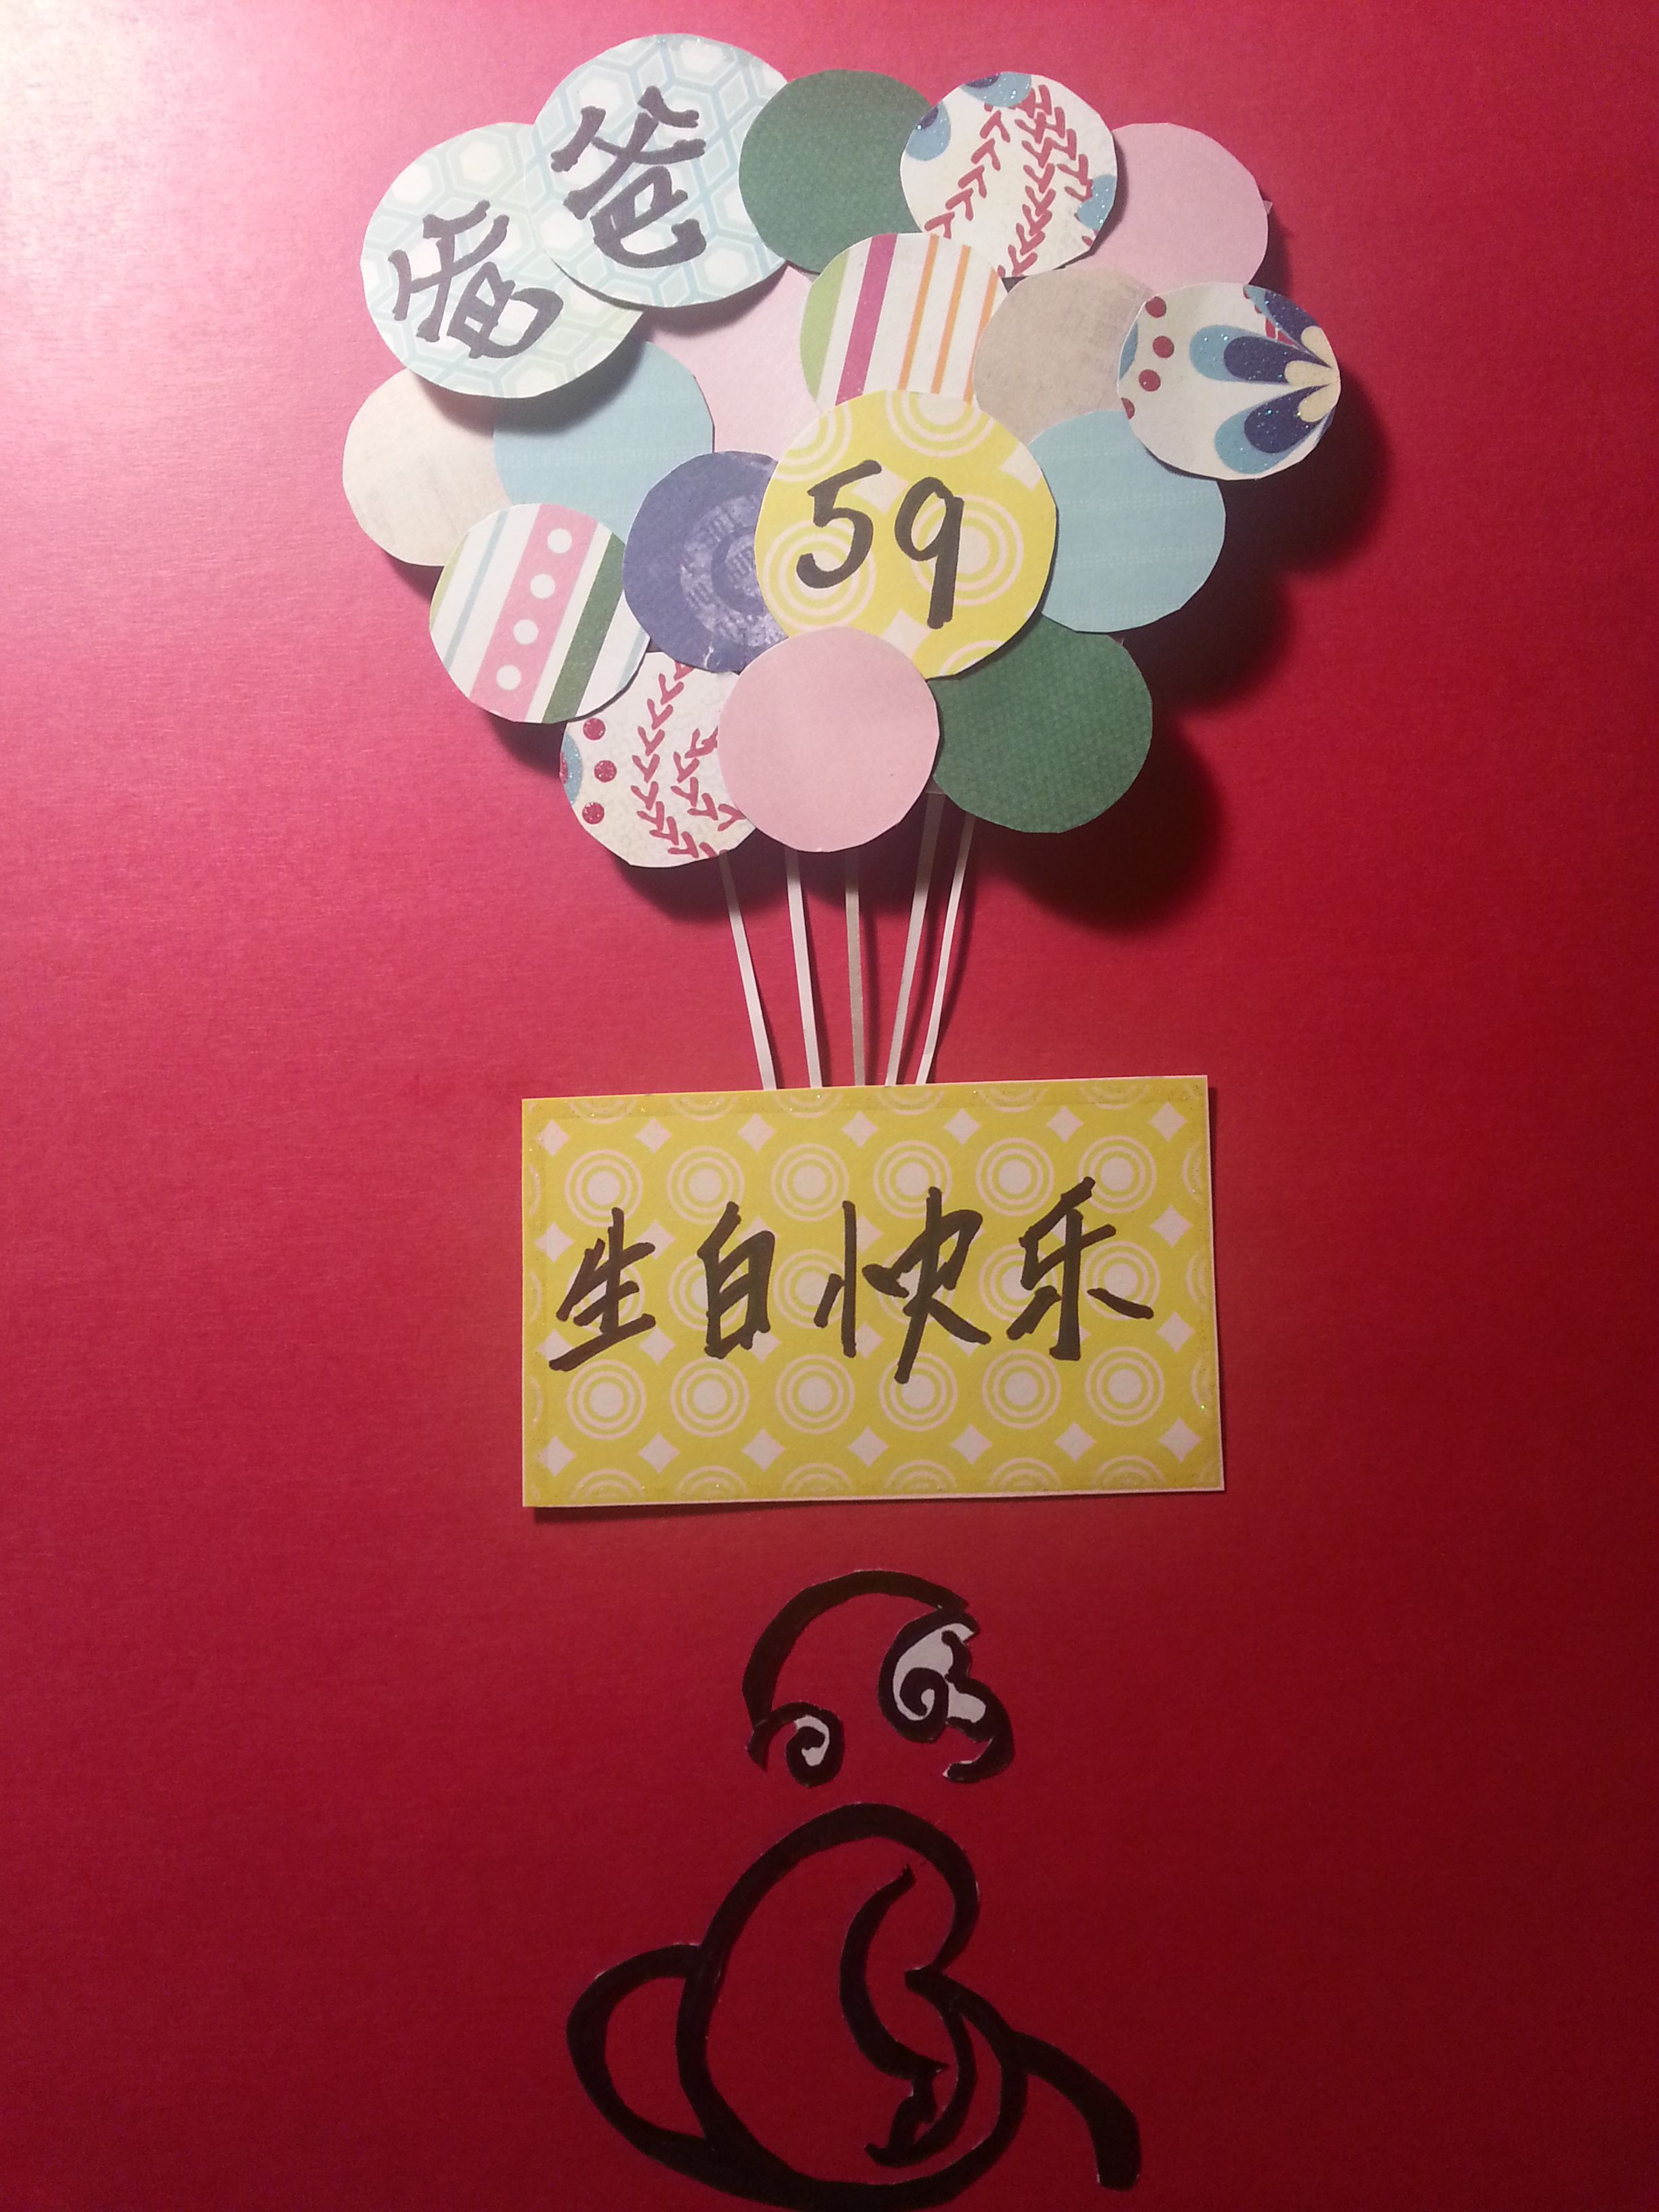 Diy Chinese Birthday Card For My Dad Who Turned 59 This Year 2015